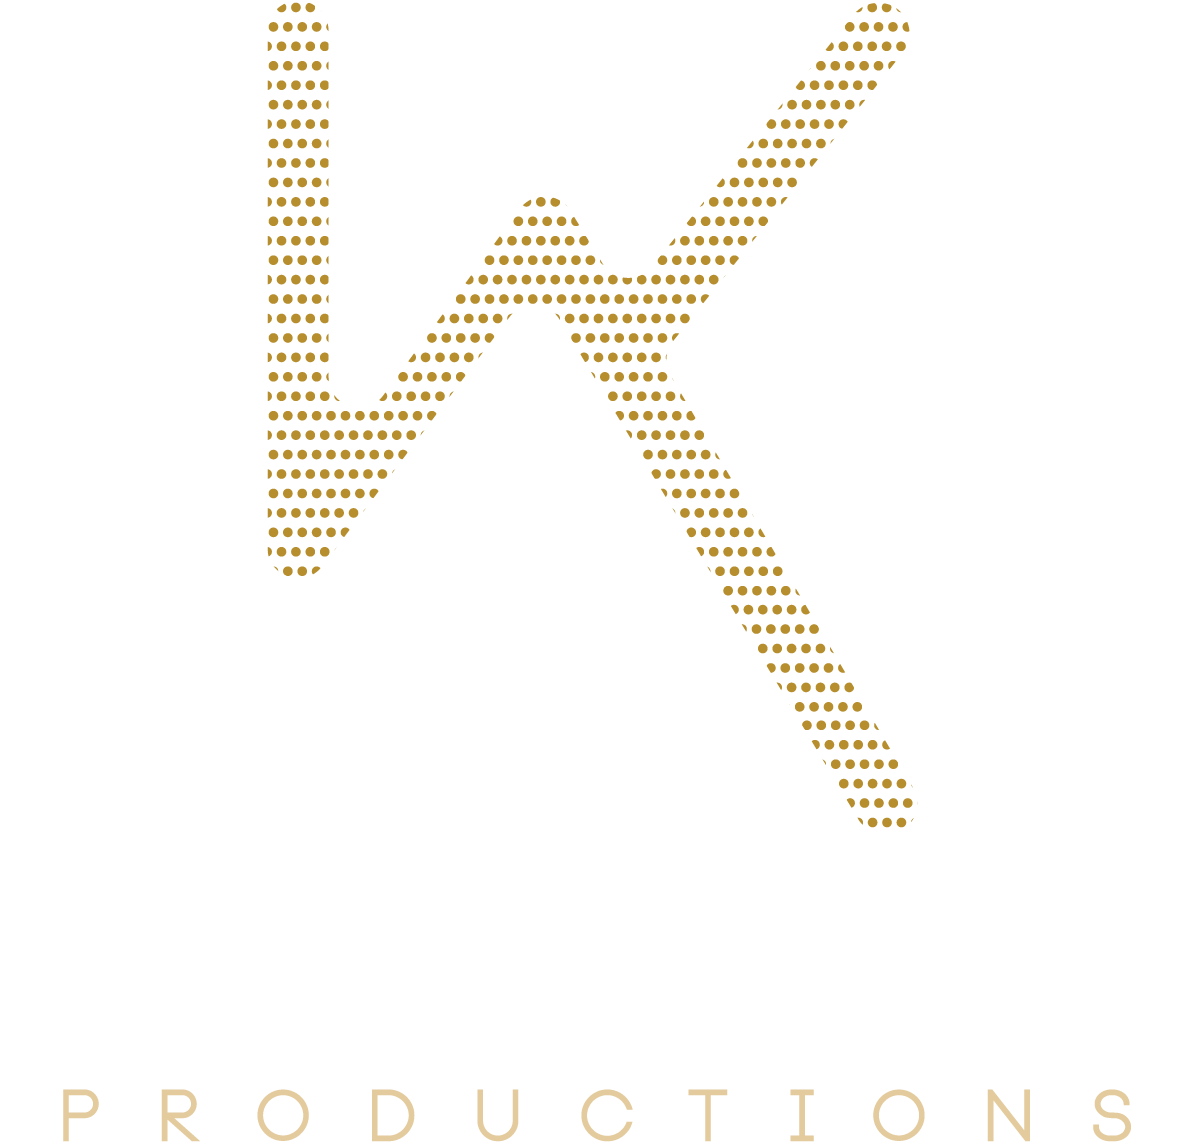 KATALYST PRODUCTIONS